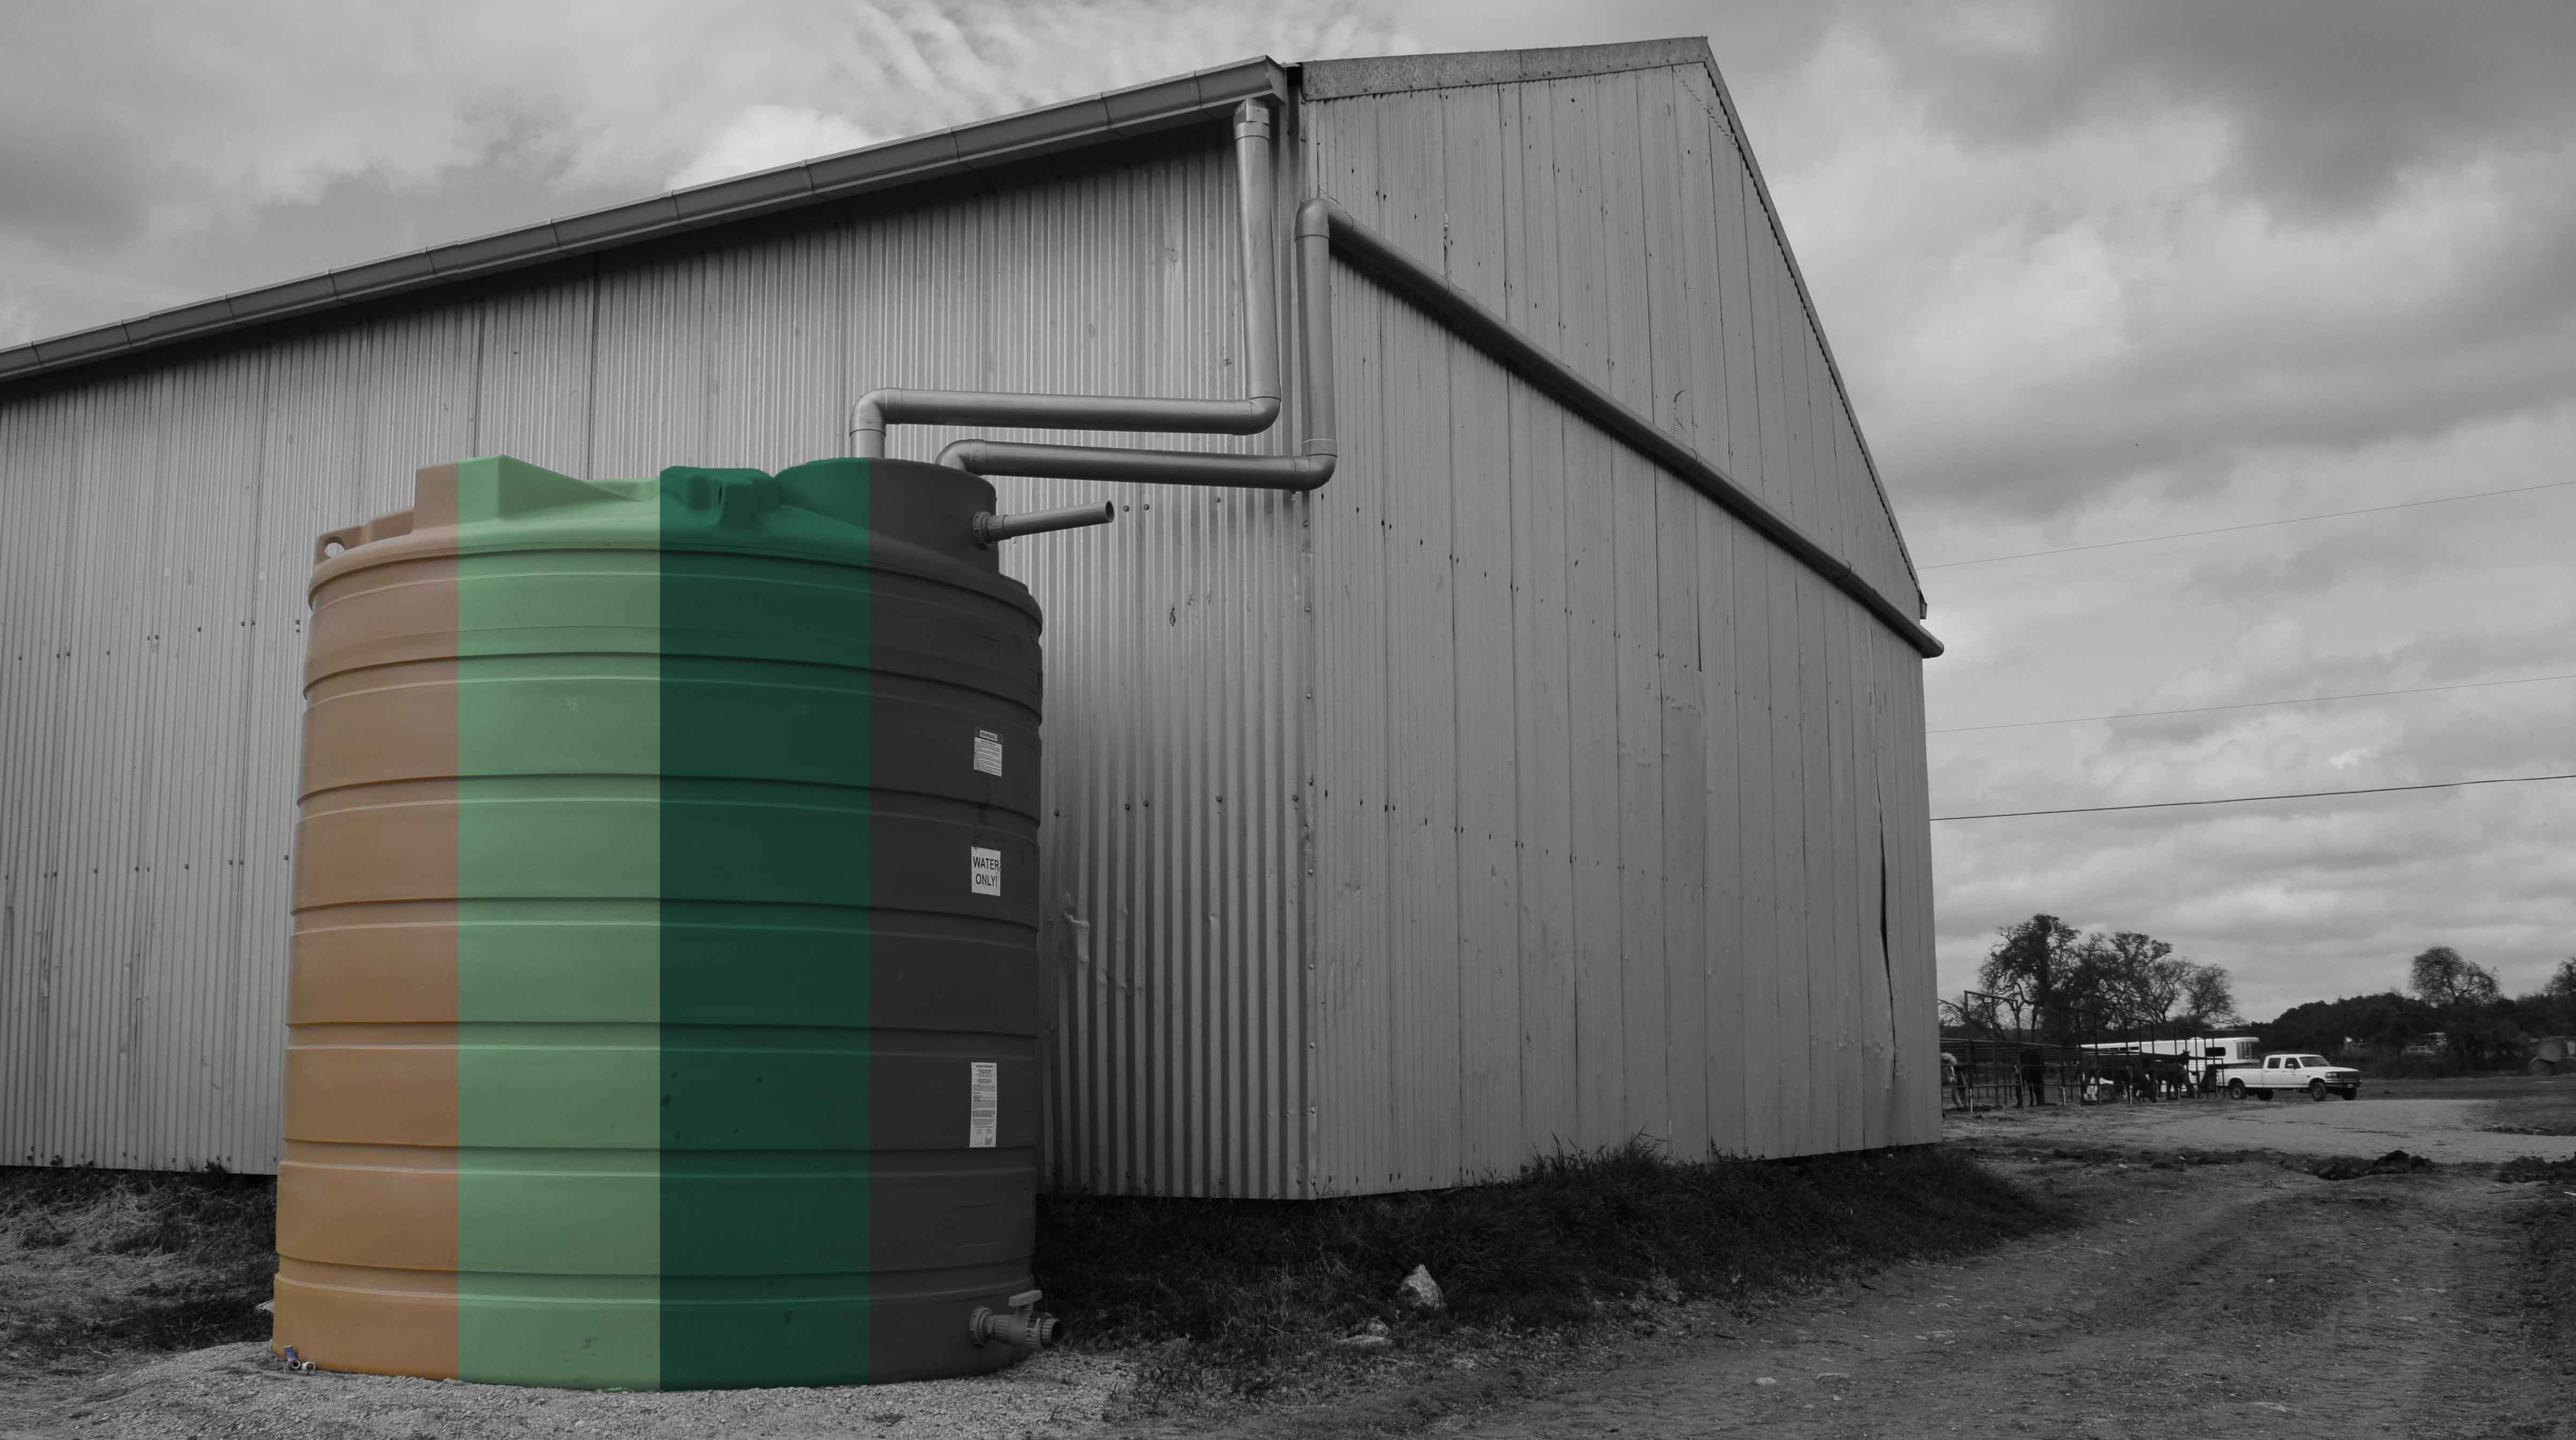 Plastic Water Tanks Does the color matter-1.jpg